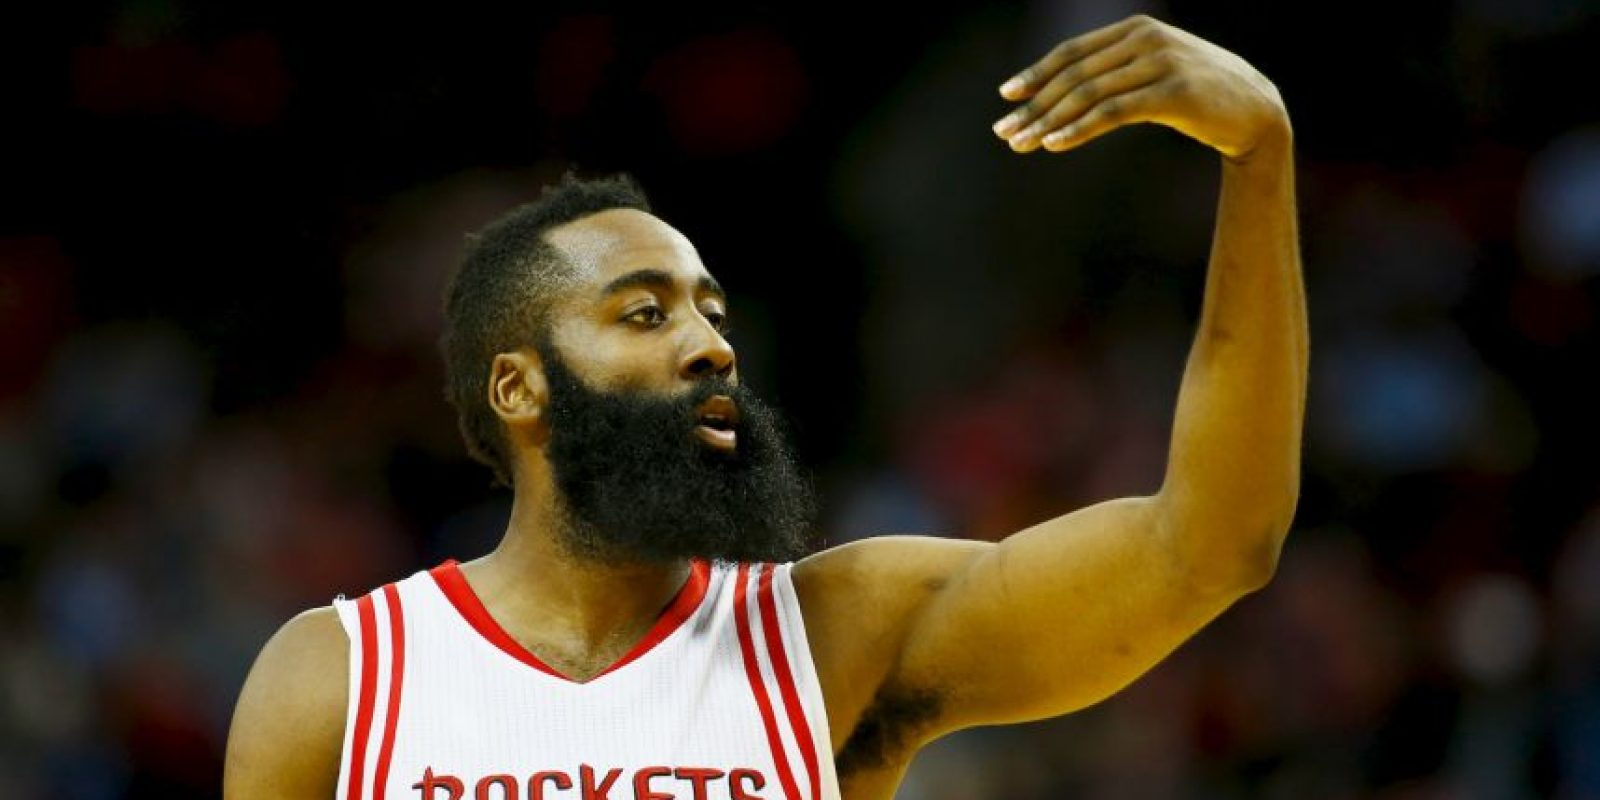 Basquetbolista de Houston Rockets Foto: Getty Images